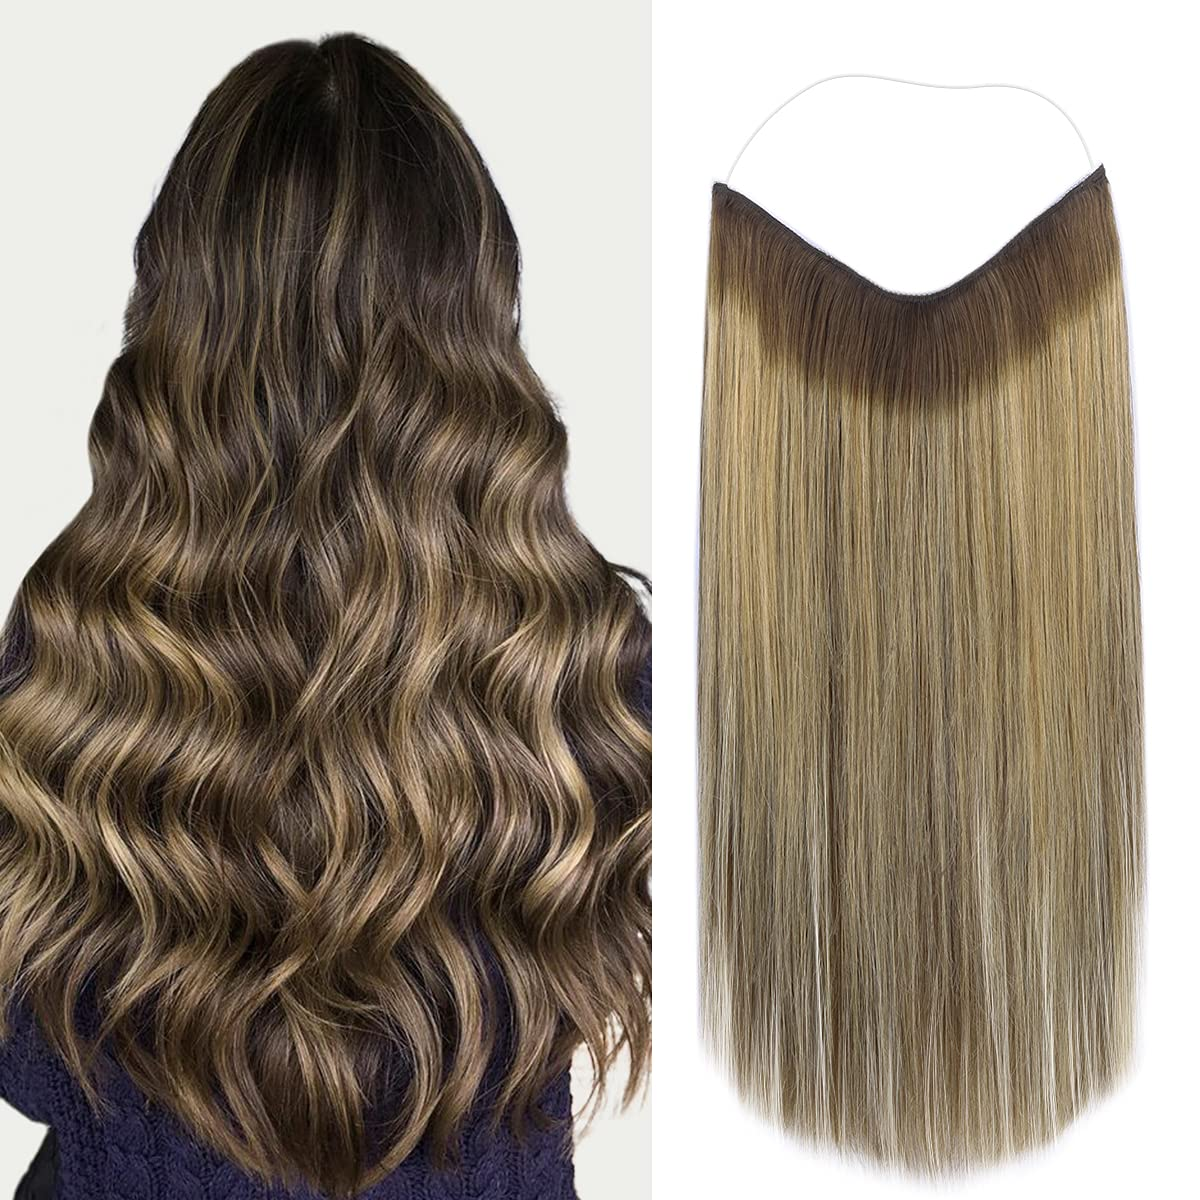 Marat Halo Hair Extensions Balayage safety Brown Caramel Oakland Mall Chocolate to